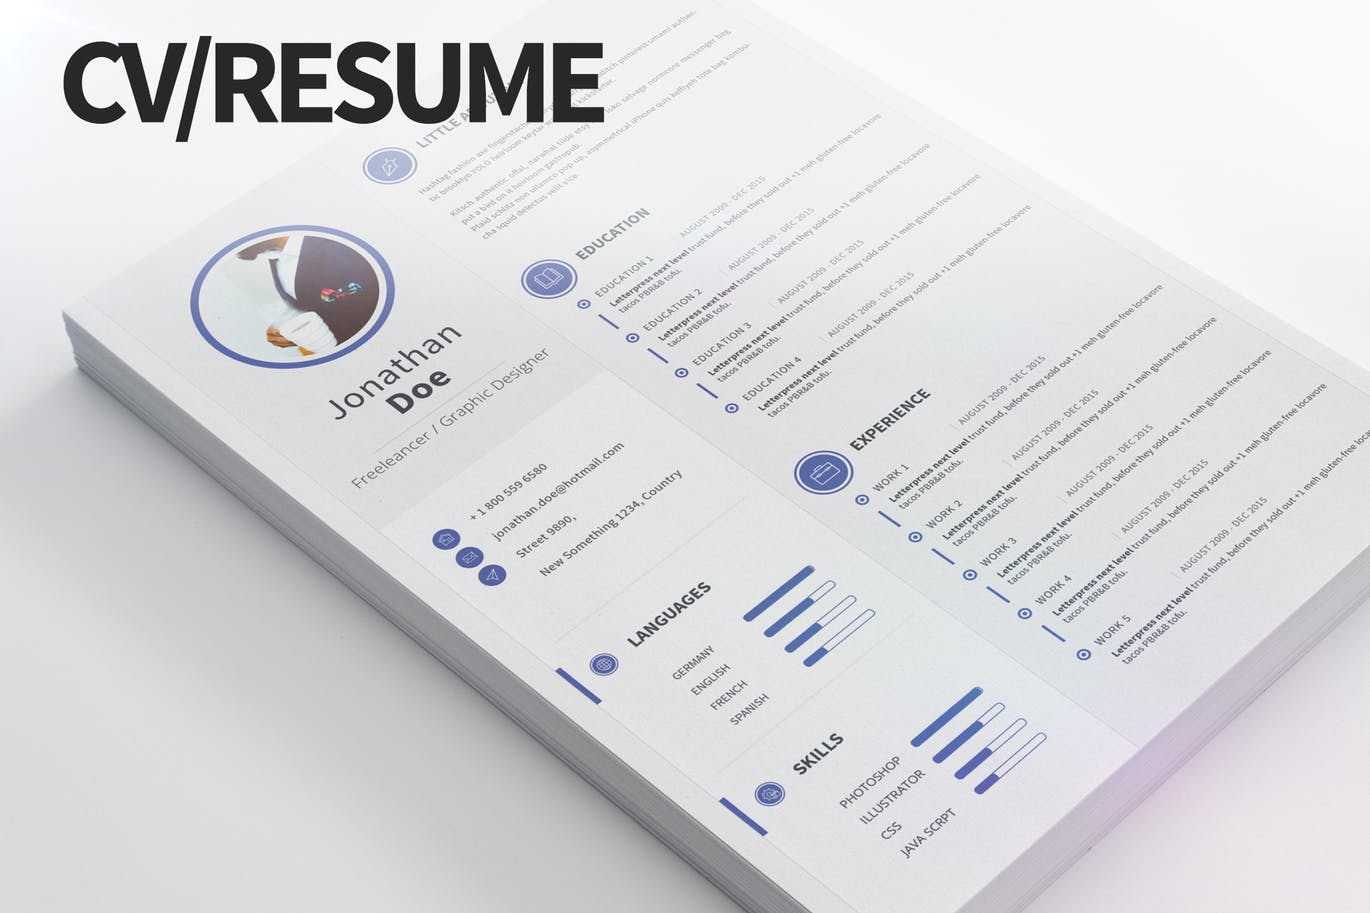 another simple resume template thats perfect for creating a basic resume this template is available in 4 different color variations and it comes in 4